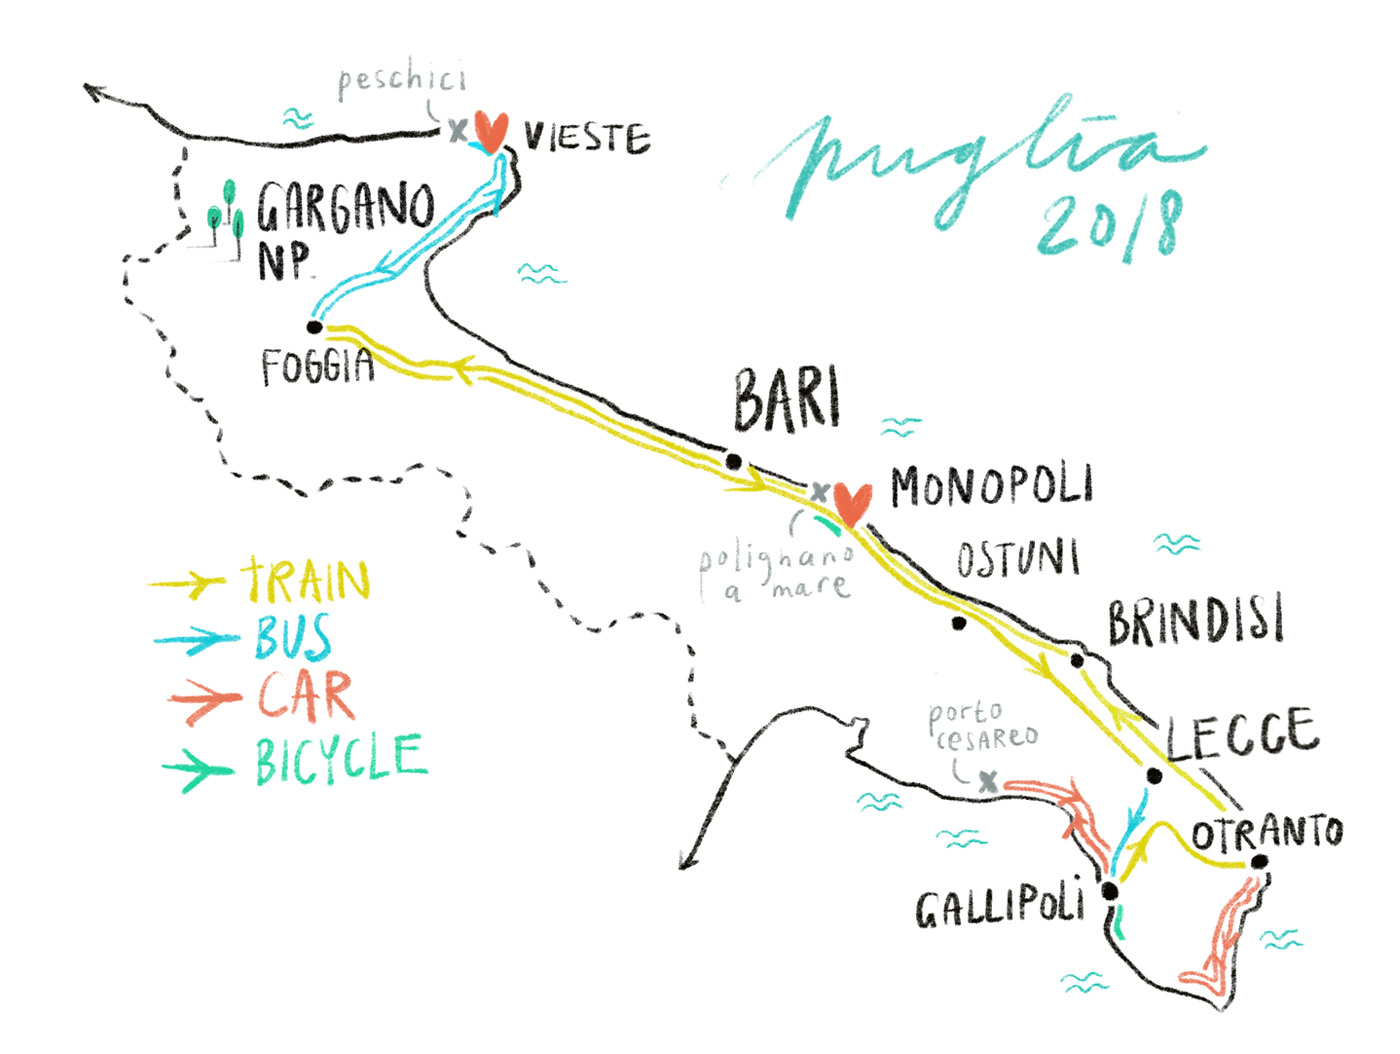 The map of our 2018 Puglia trip. To Bari by plane and then by car, bus, train and bicycle / illustration by Annemarie Gorissen